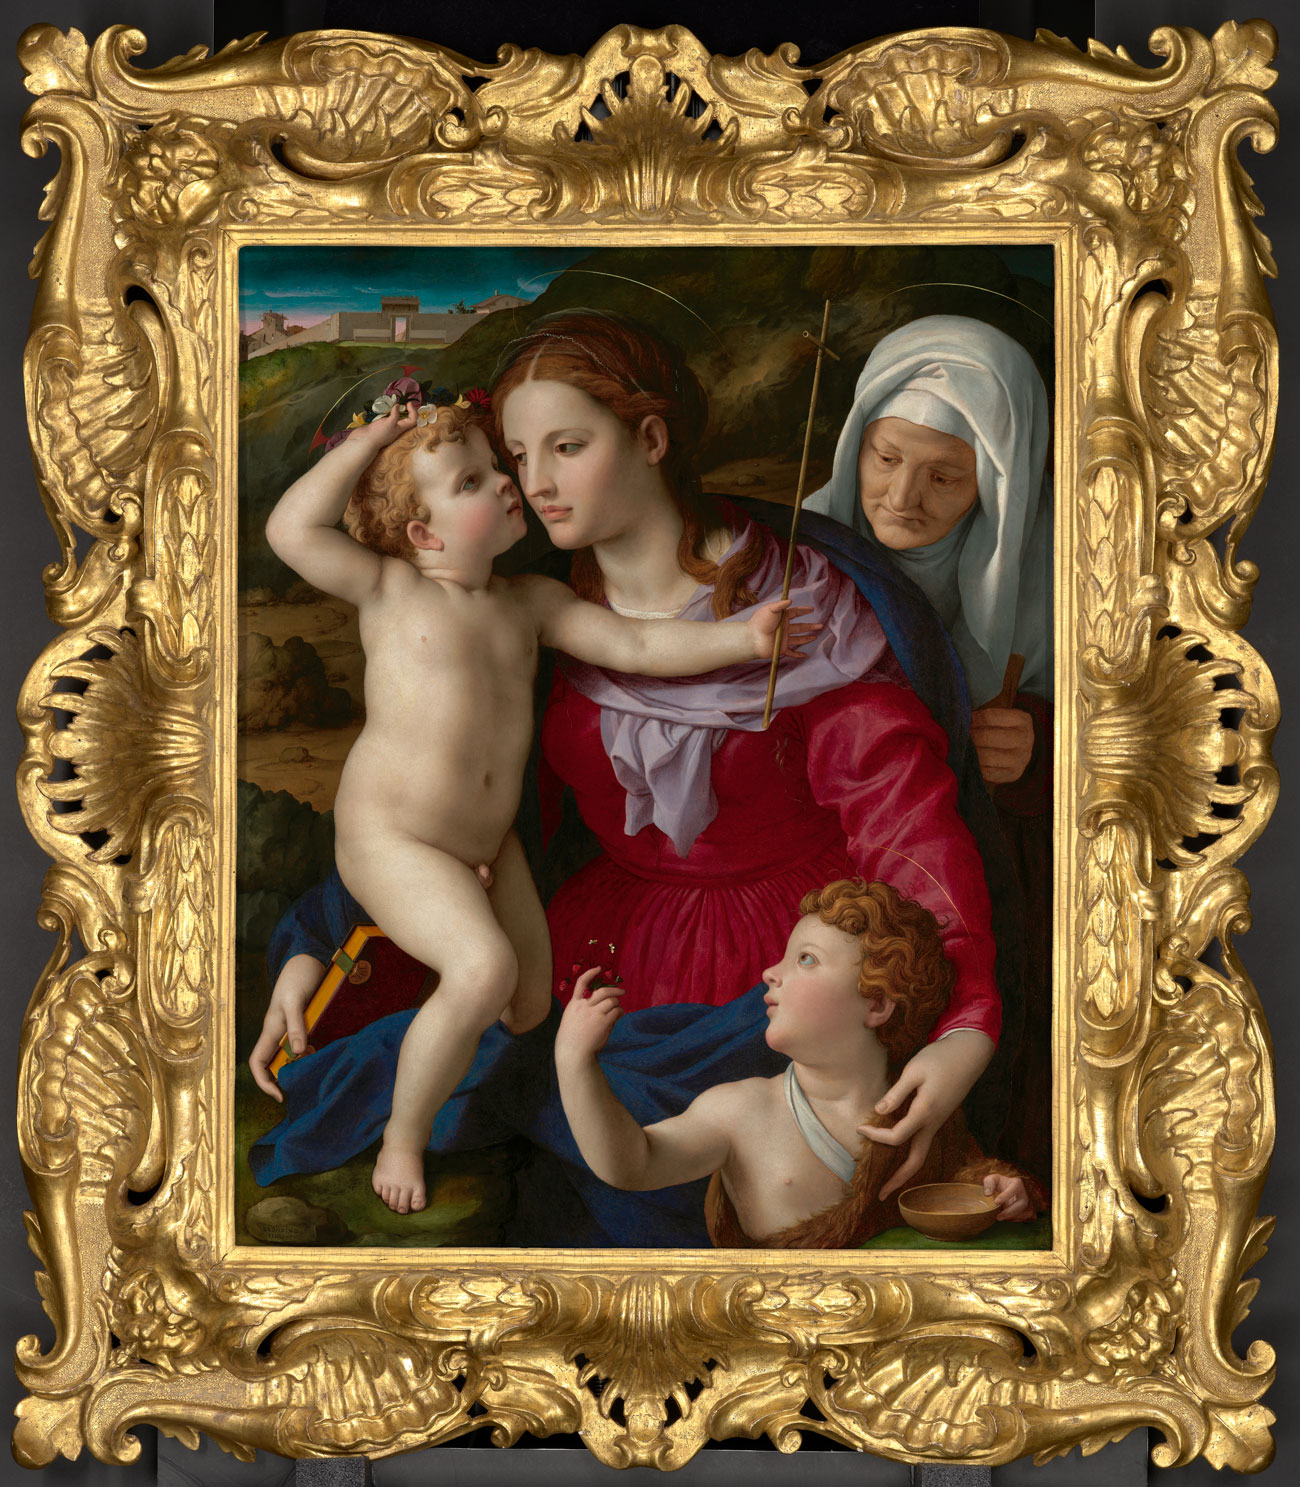 Elaborate gold frame around painting of woman holding two toddlers with an older woman peering over her shoulder